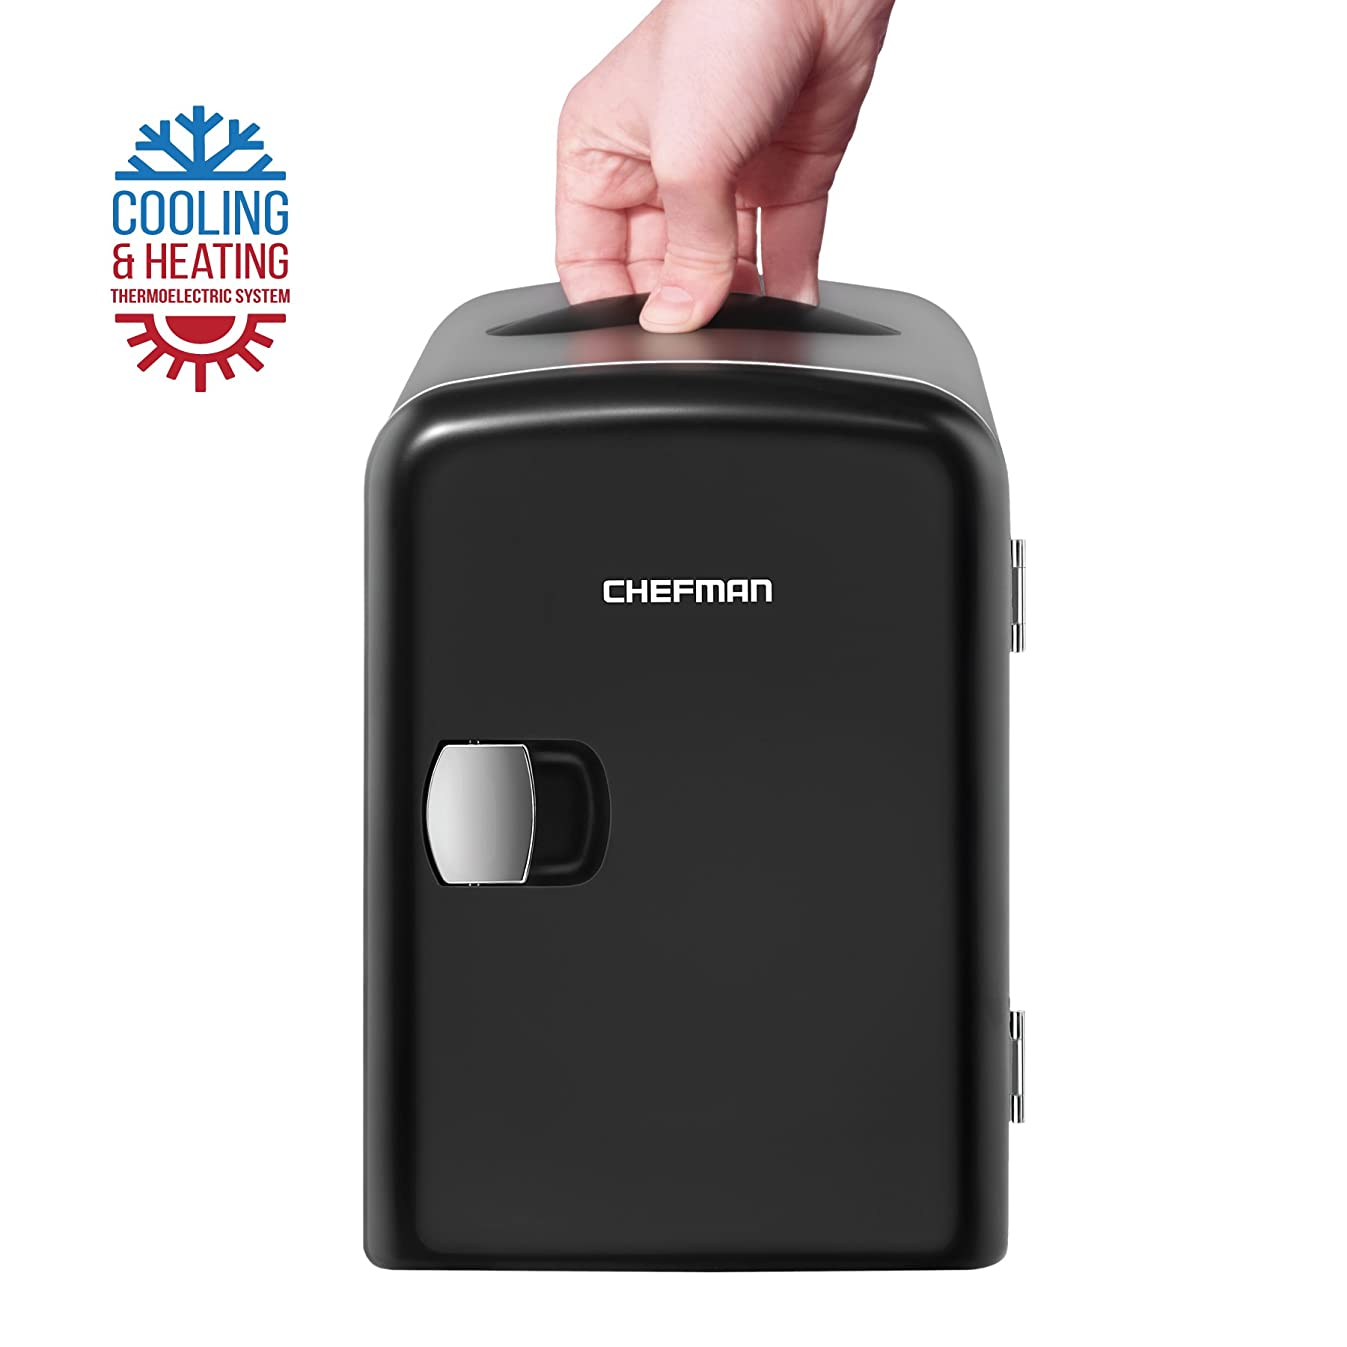 Chefman Mini Portable Compact Personal Fridge, Cools & Heats, 4 Liter Capacity, Chills 6 12oz cans, 100% Freon-Free & Eco Friendly, Includes Plugs for Home Outlet & 12V Car Charger - Black